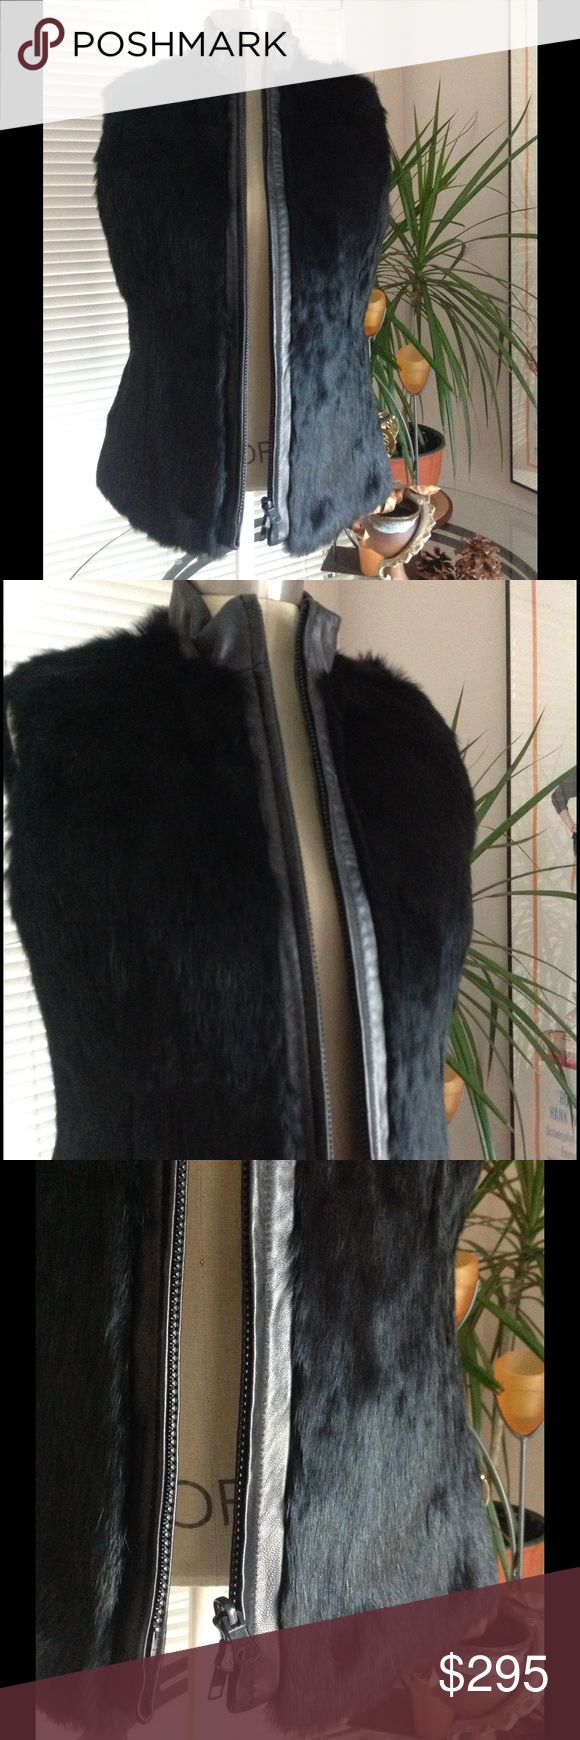 Cozy Warm Fur w/leather trim Vest New/w tag NWT Totally on Trend, Dana Buchman Fur and Leather Trim Vest. Fully lined with embossed pattern black fabric. Soft leather trim around the collar and all down the zipper. Zip front. Real fur. Just beautiful!  Imagine this vest over a beige turtleneck with black skinny jeans and booties, HOT! Suggested retail price @ $650.00  Style #DBMU7385 Offers Accepted.... Dana Buchman Jackets & Coats Vests